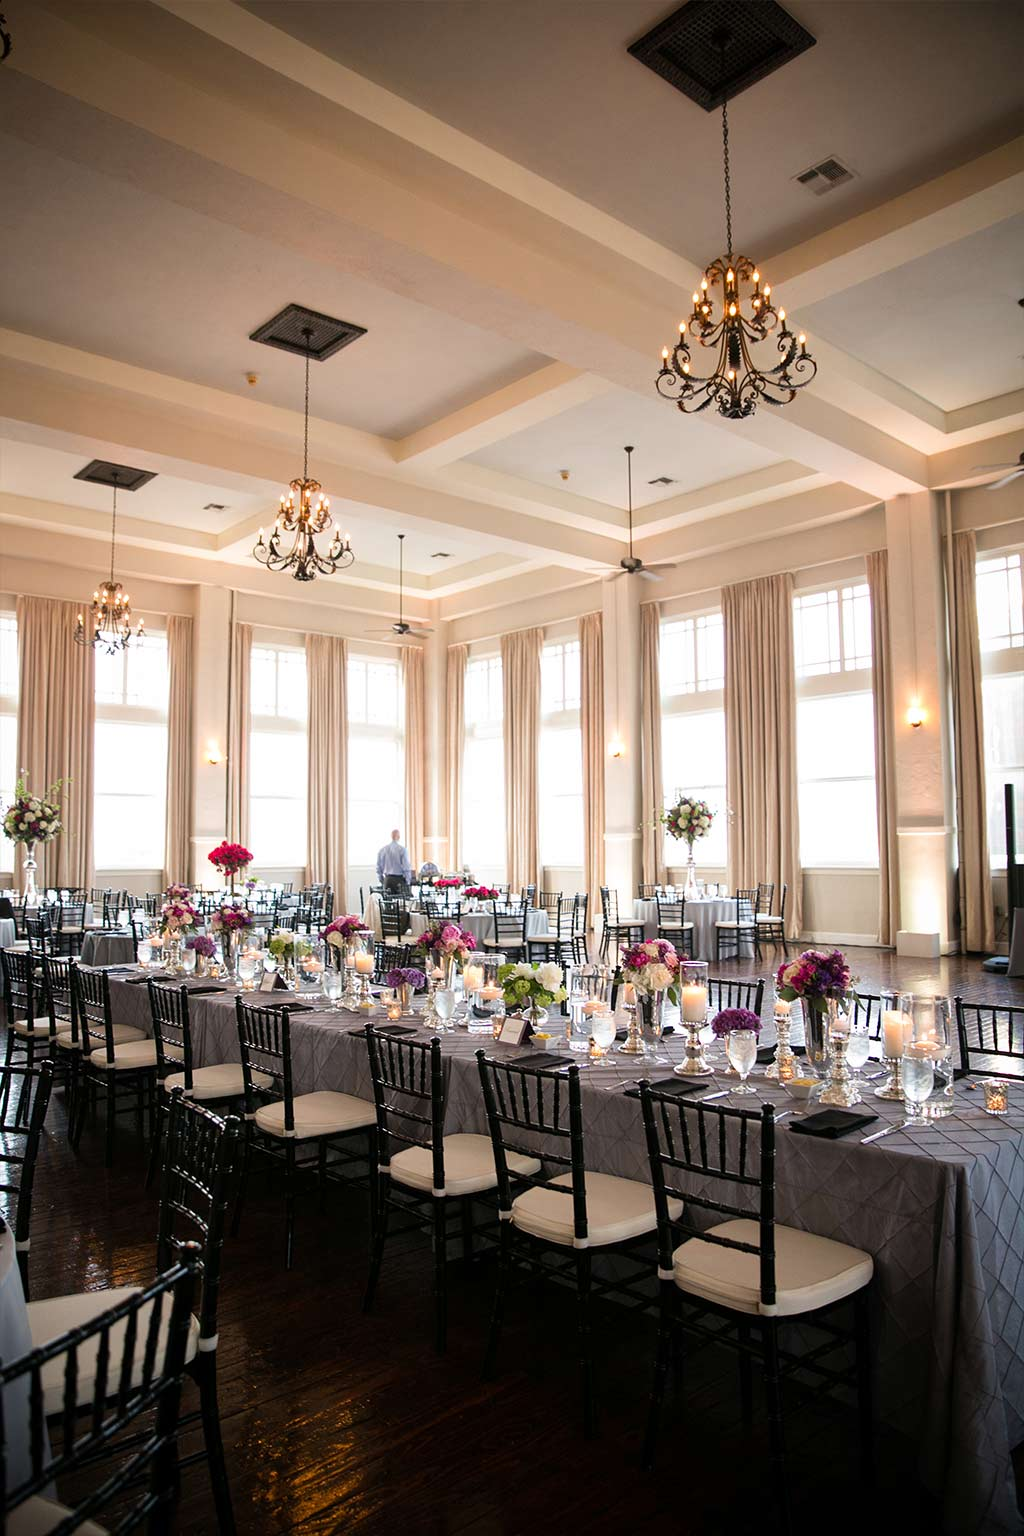 Wedding Photo Gallery   The Room on Main   Dallas   After Yes